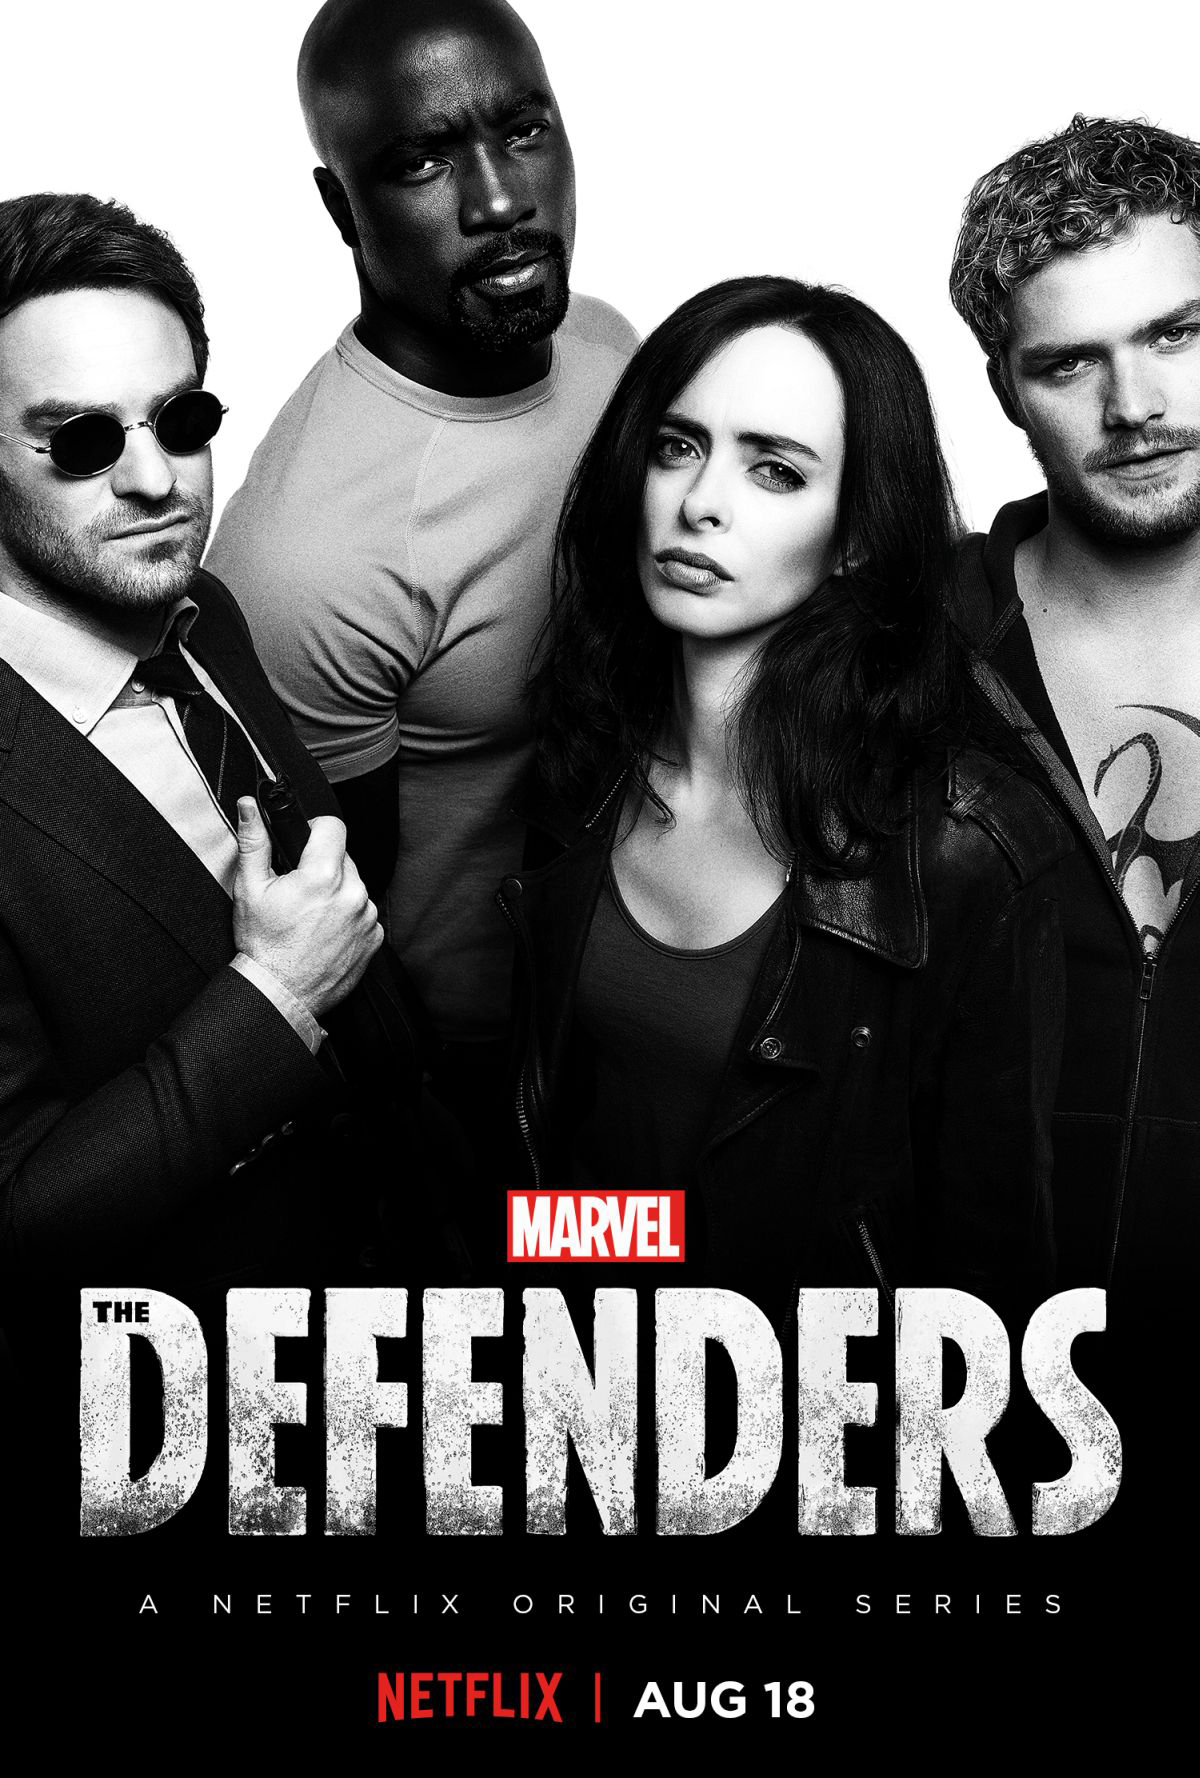 The new poster for Marvel's The Defenders